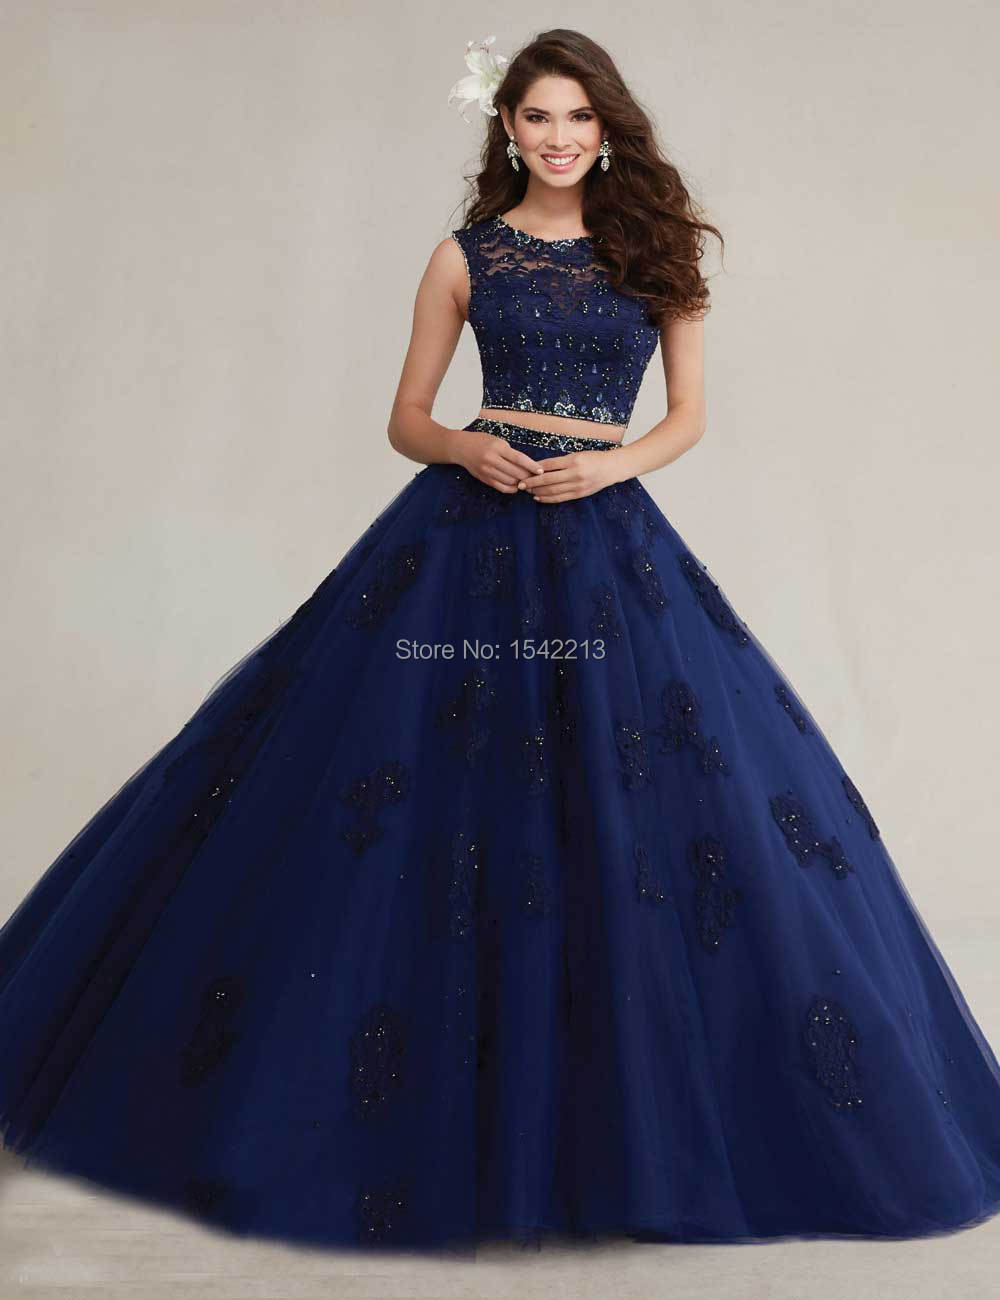 Online Get Cheap Navy Blue Sweet 16 Dresses -Aliexpress.com ...